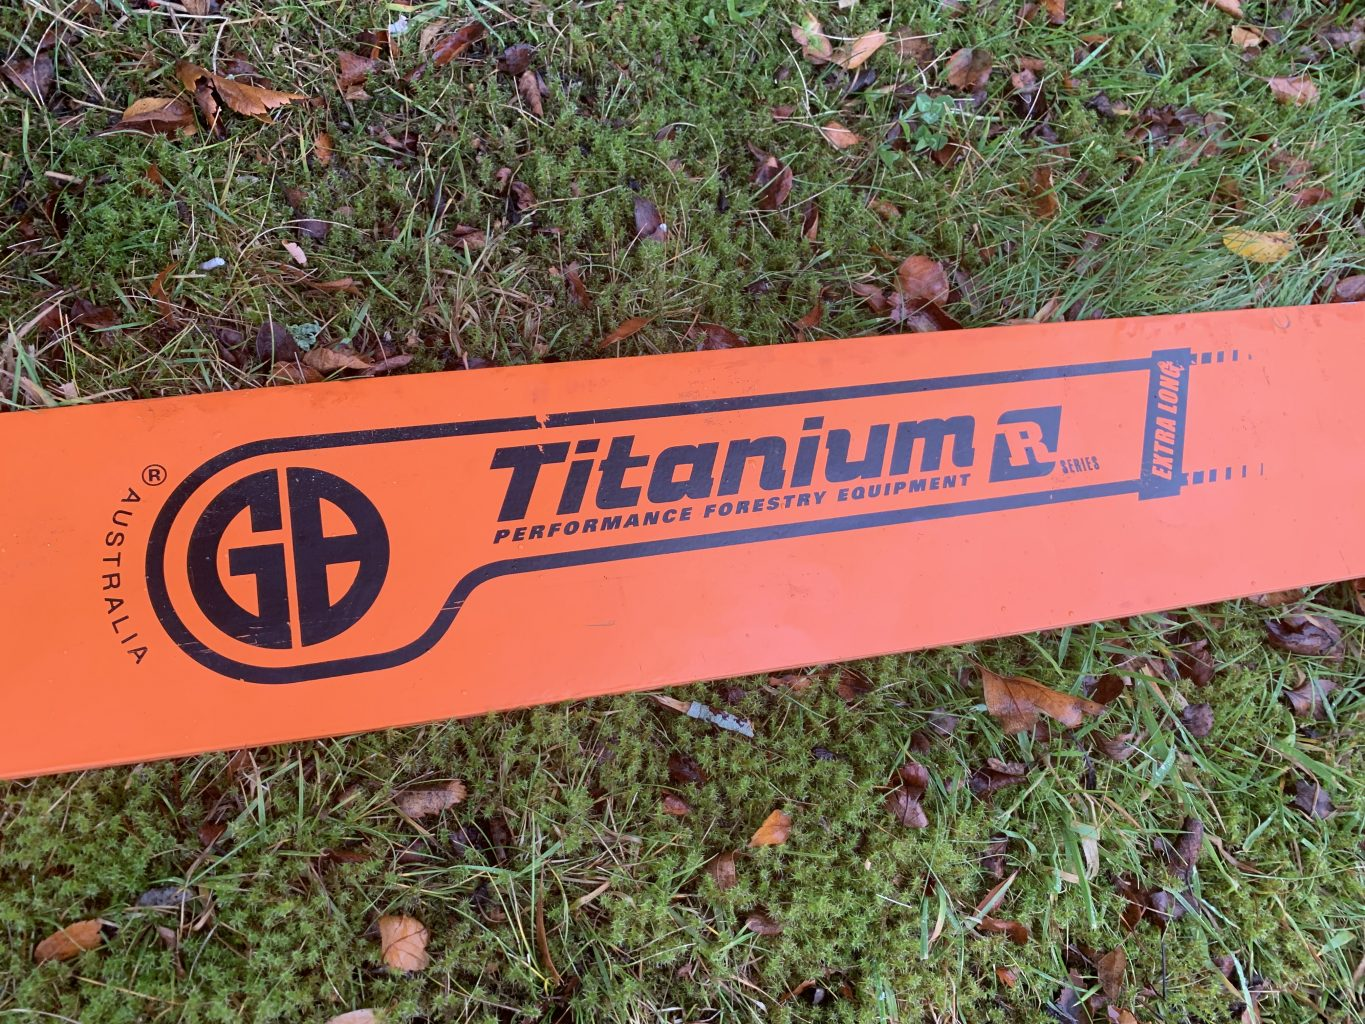 """HSS84-63RQ 84""""[212cm] GB Slotted Extra Long 8 Foot Bar for Stihl 050, 051, 070, 075, 076, 08, 090, 088, MS880 .404 .063 222 drive links"""